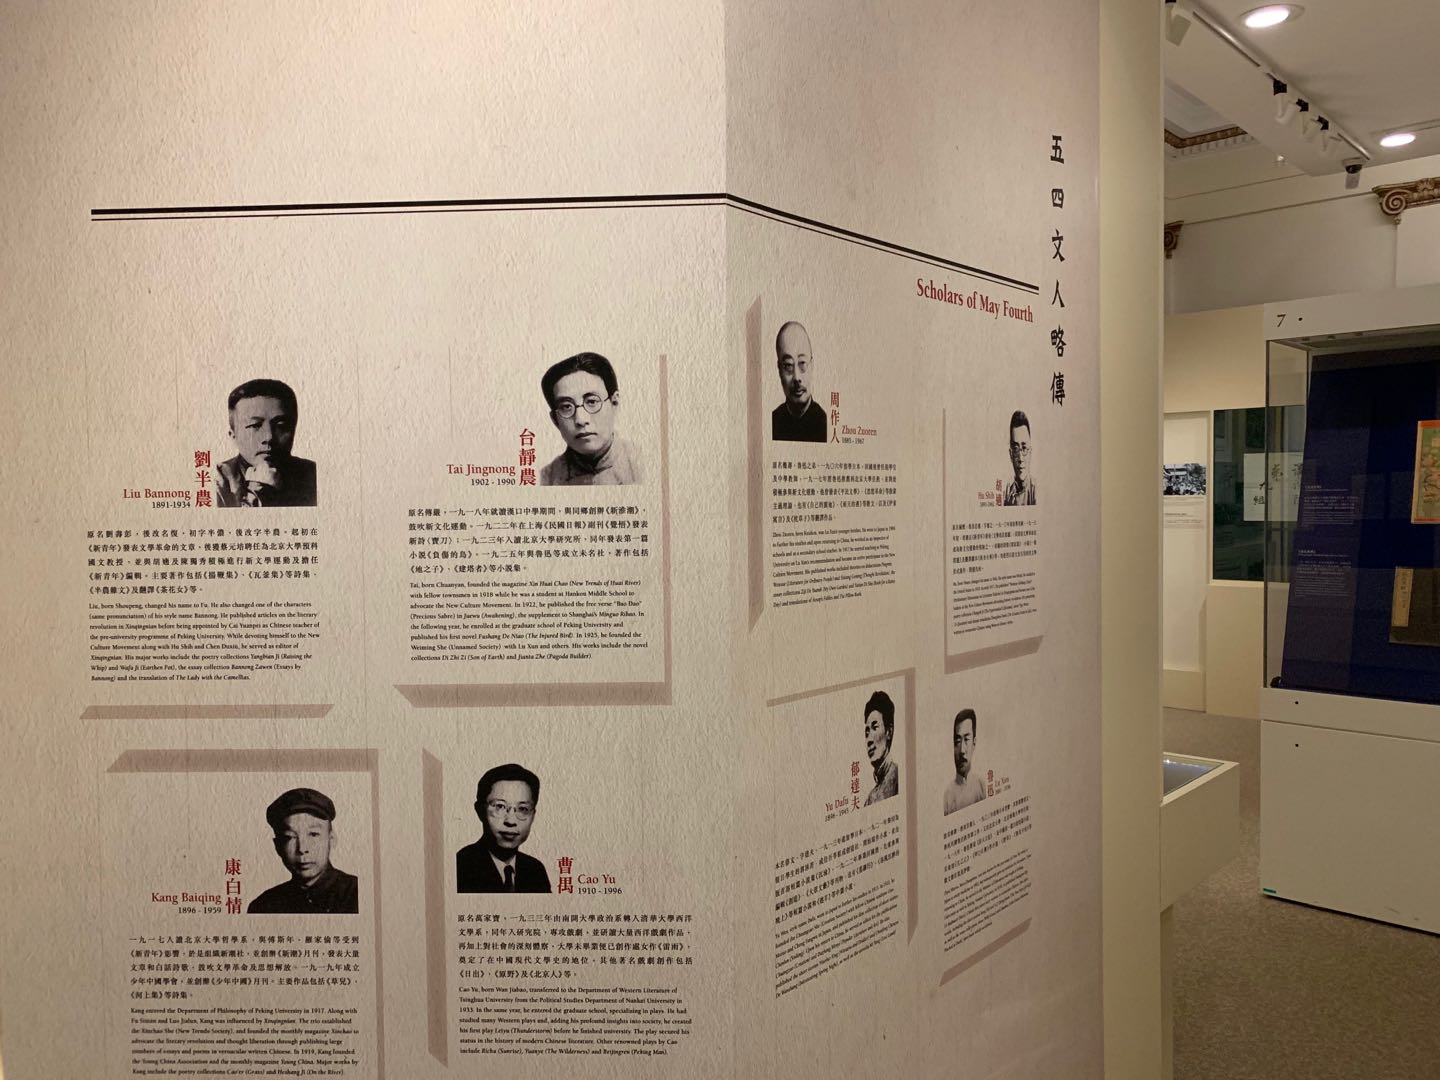 An exhibition in Hong Kong shows the key intellectuals involved in the May Fourth Movement.